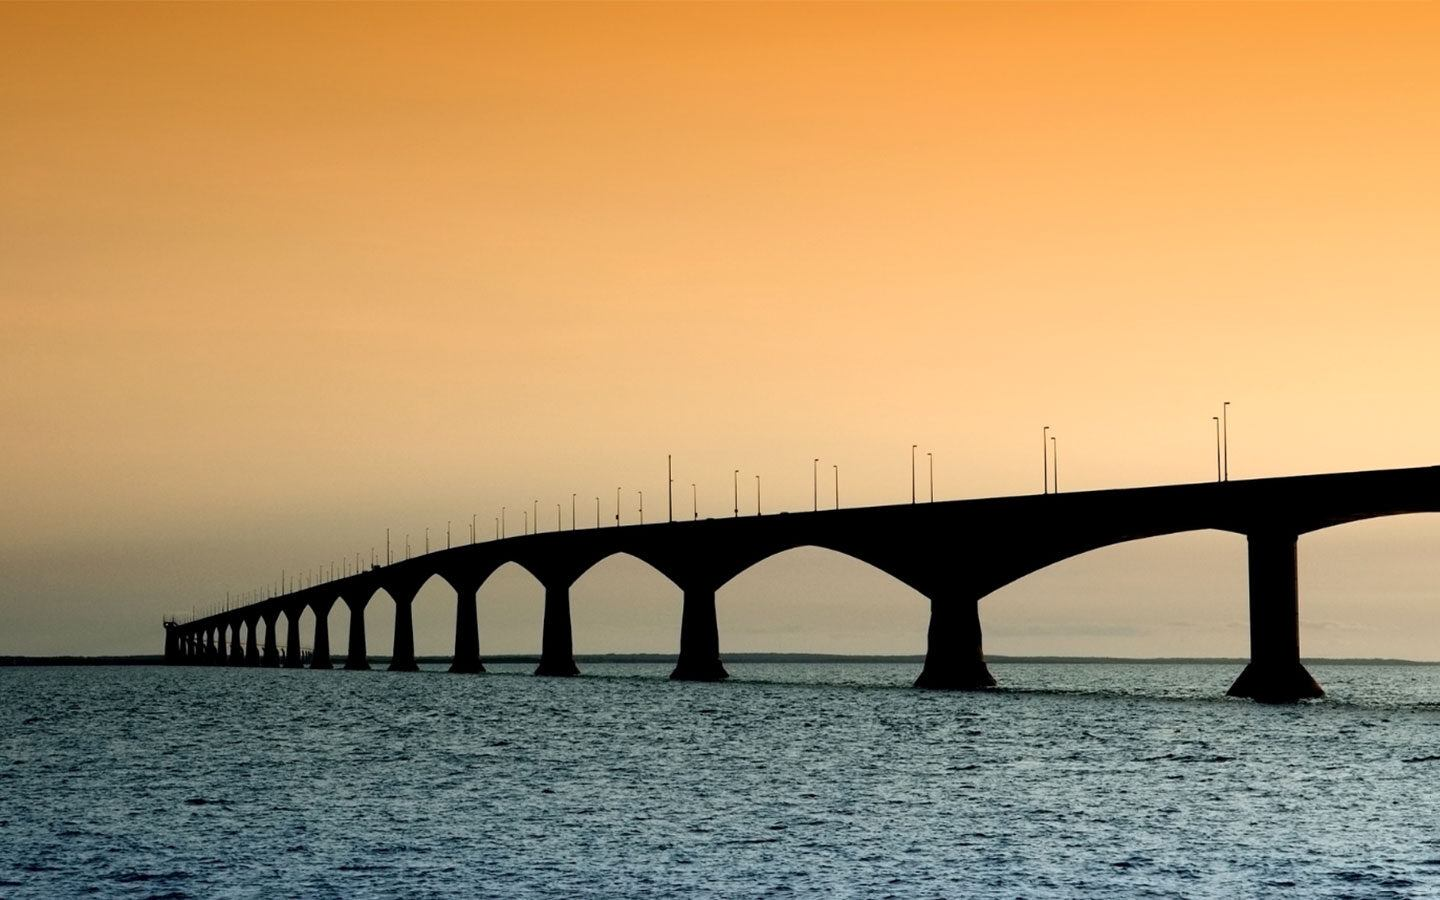 The Confederation Bridge from New Brunswick to Prince Edward Island